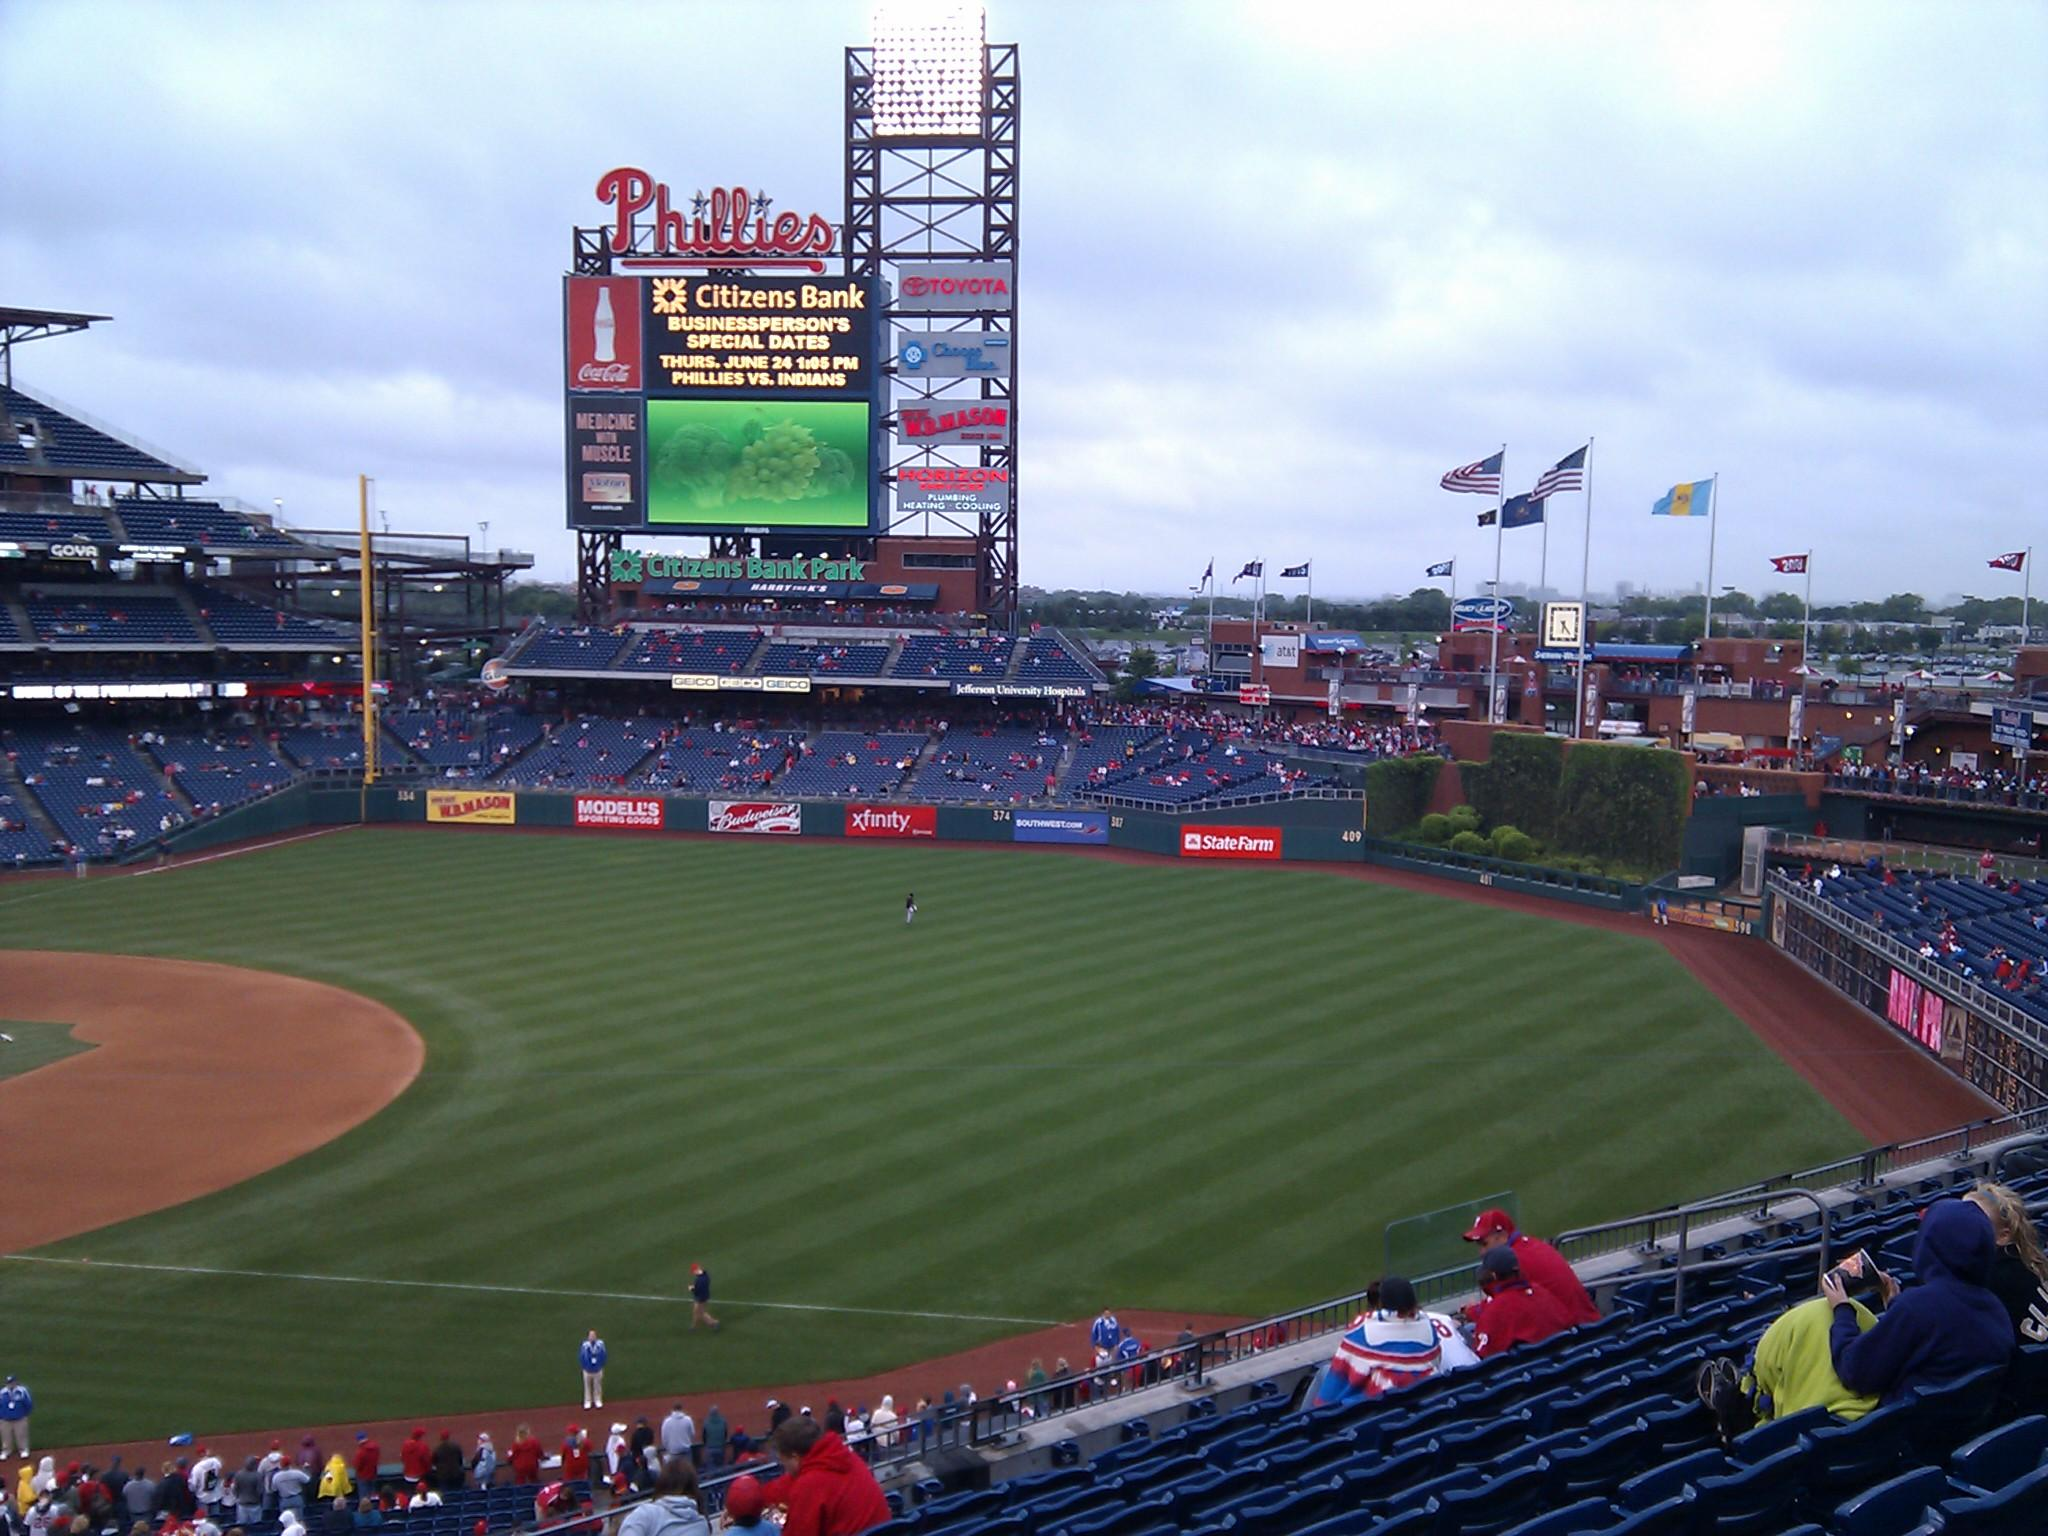 Citizens Bank Park Section 210 Row 10 Seat 18